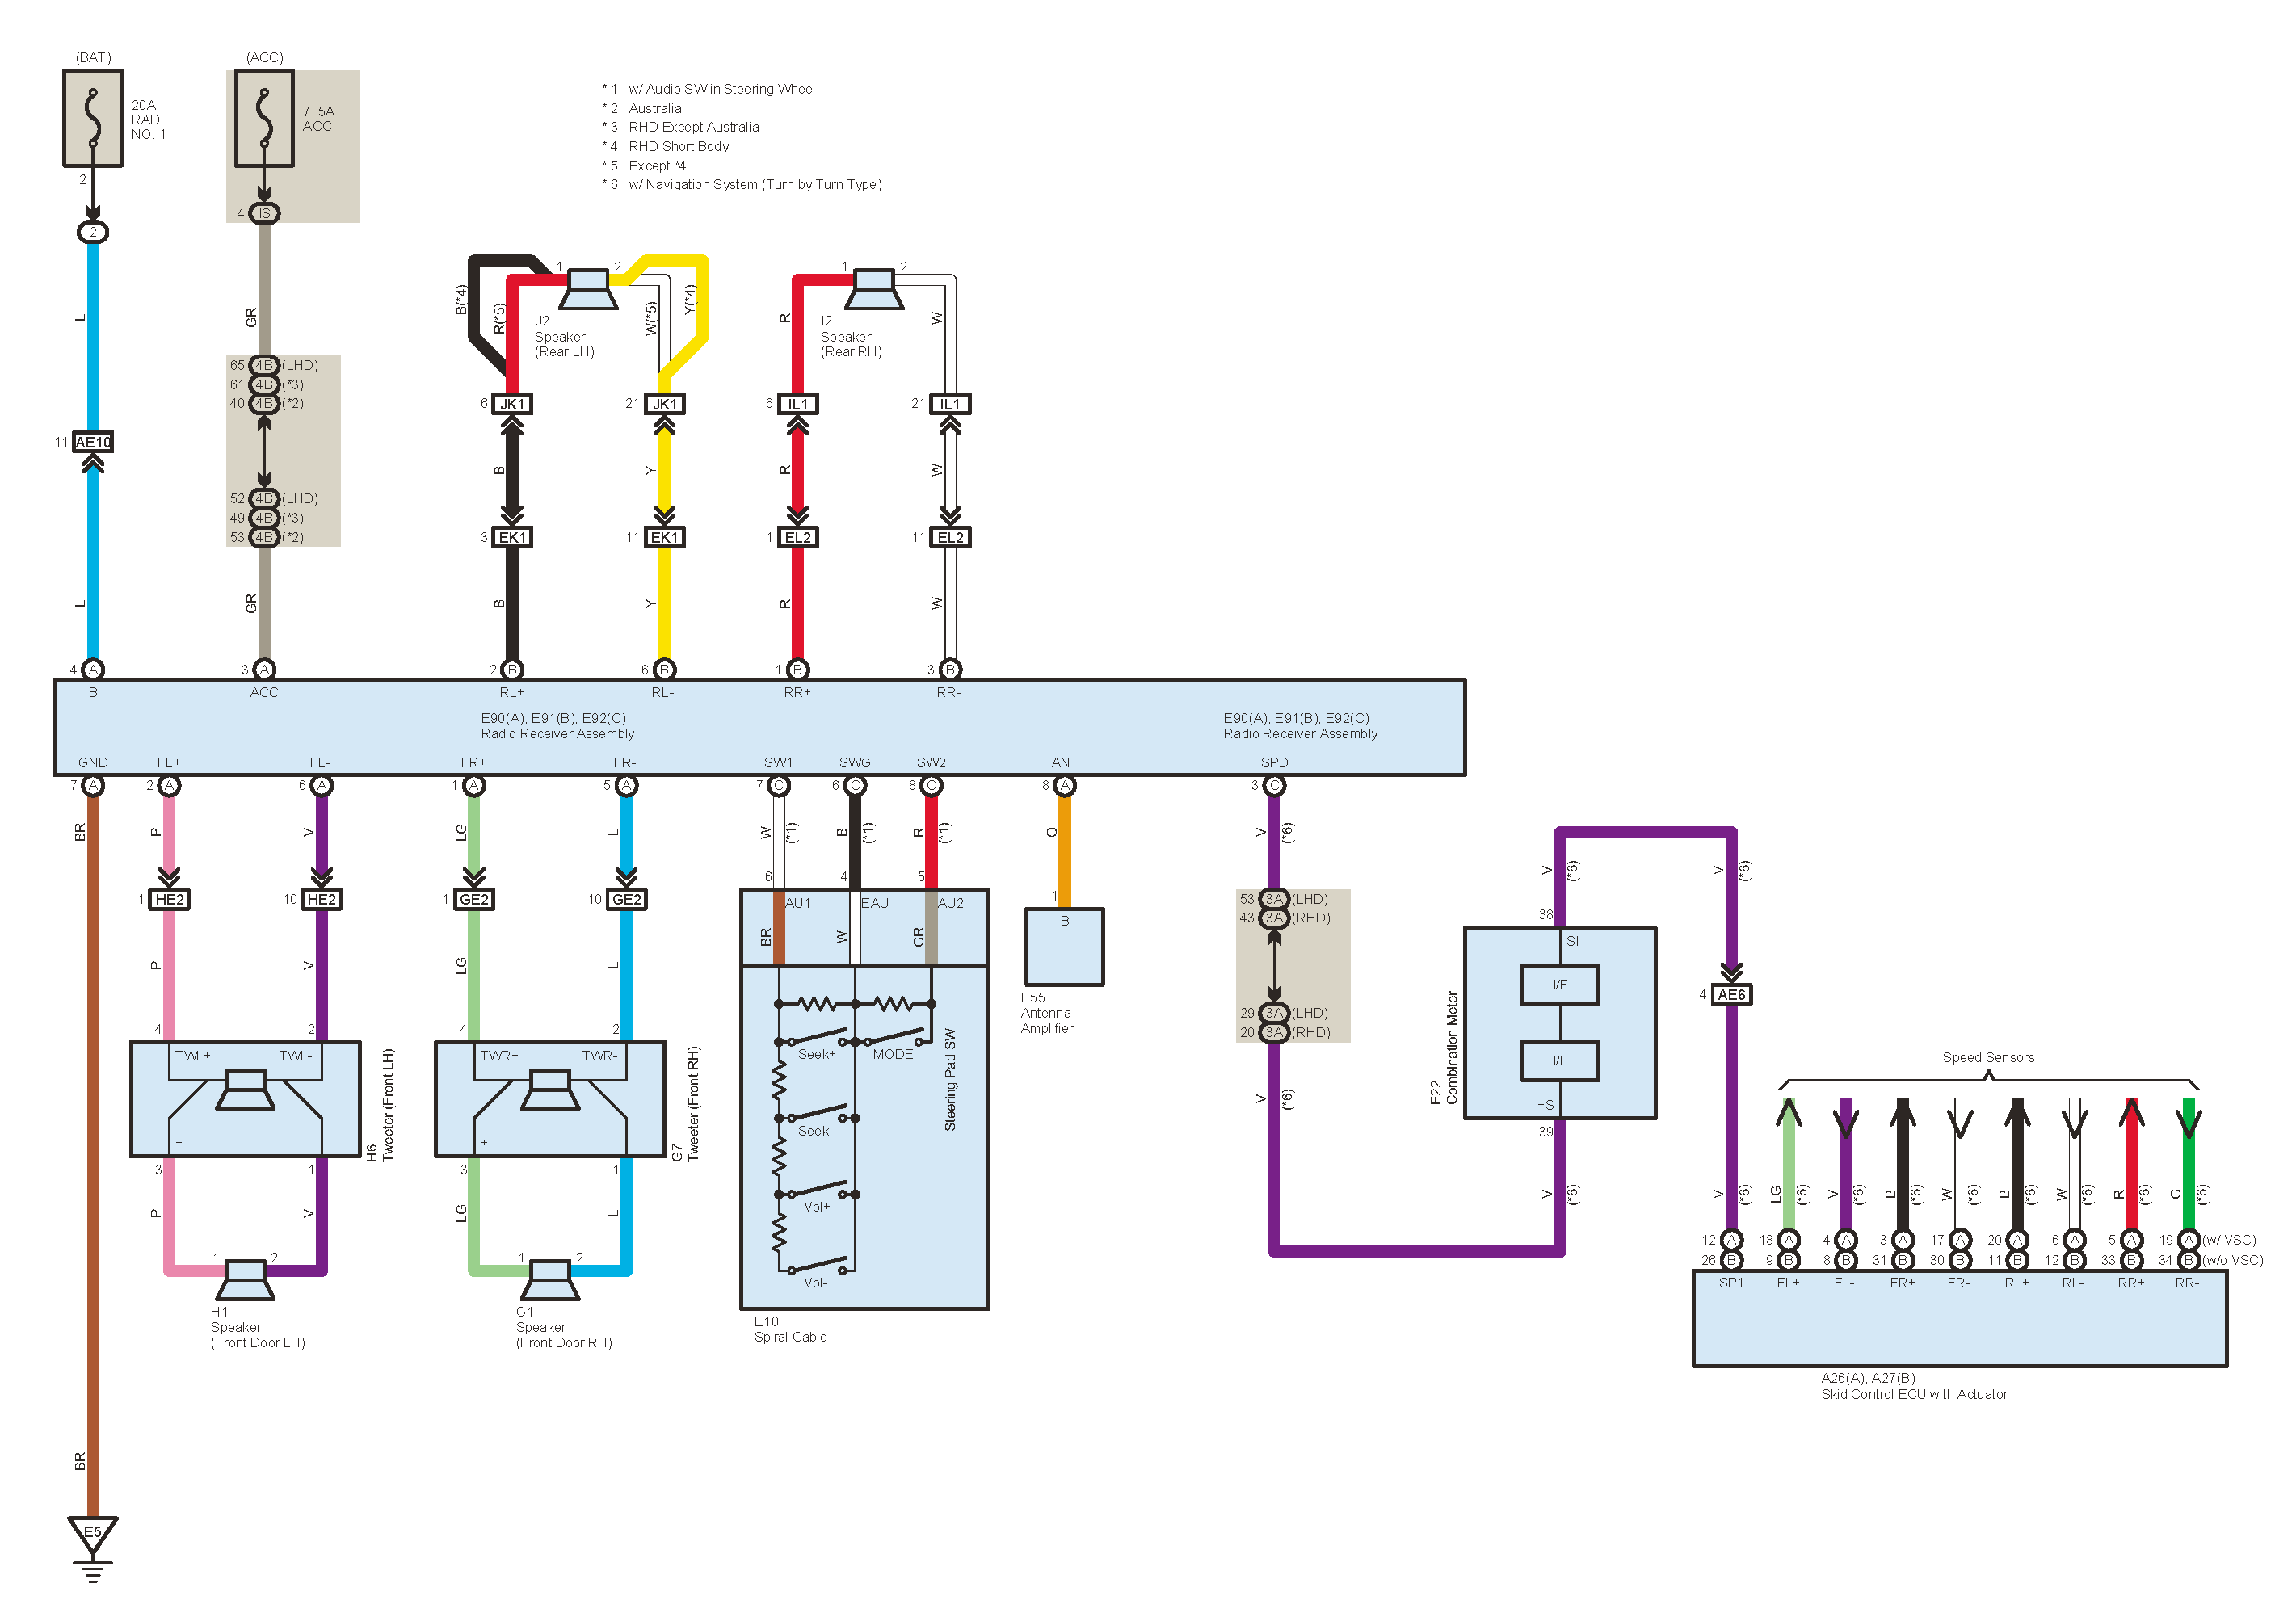 2013 Rav4 Wiring Diagram Just Wiring Diagram Schematic 2013 Ram 1500 Wiring  Diagram 2013 Rav4 Stereo Wiring Diagram